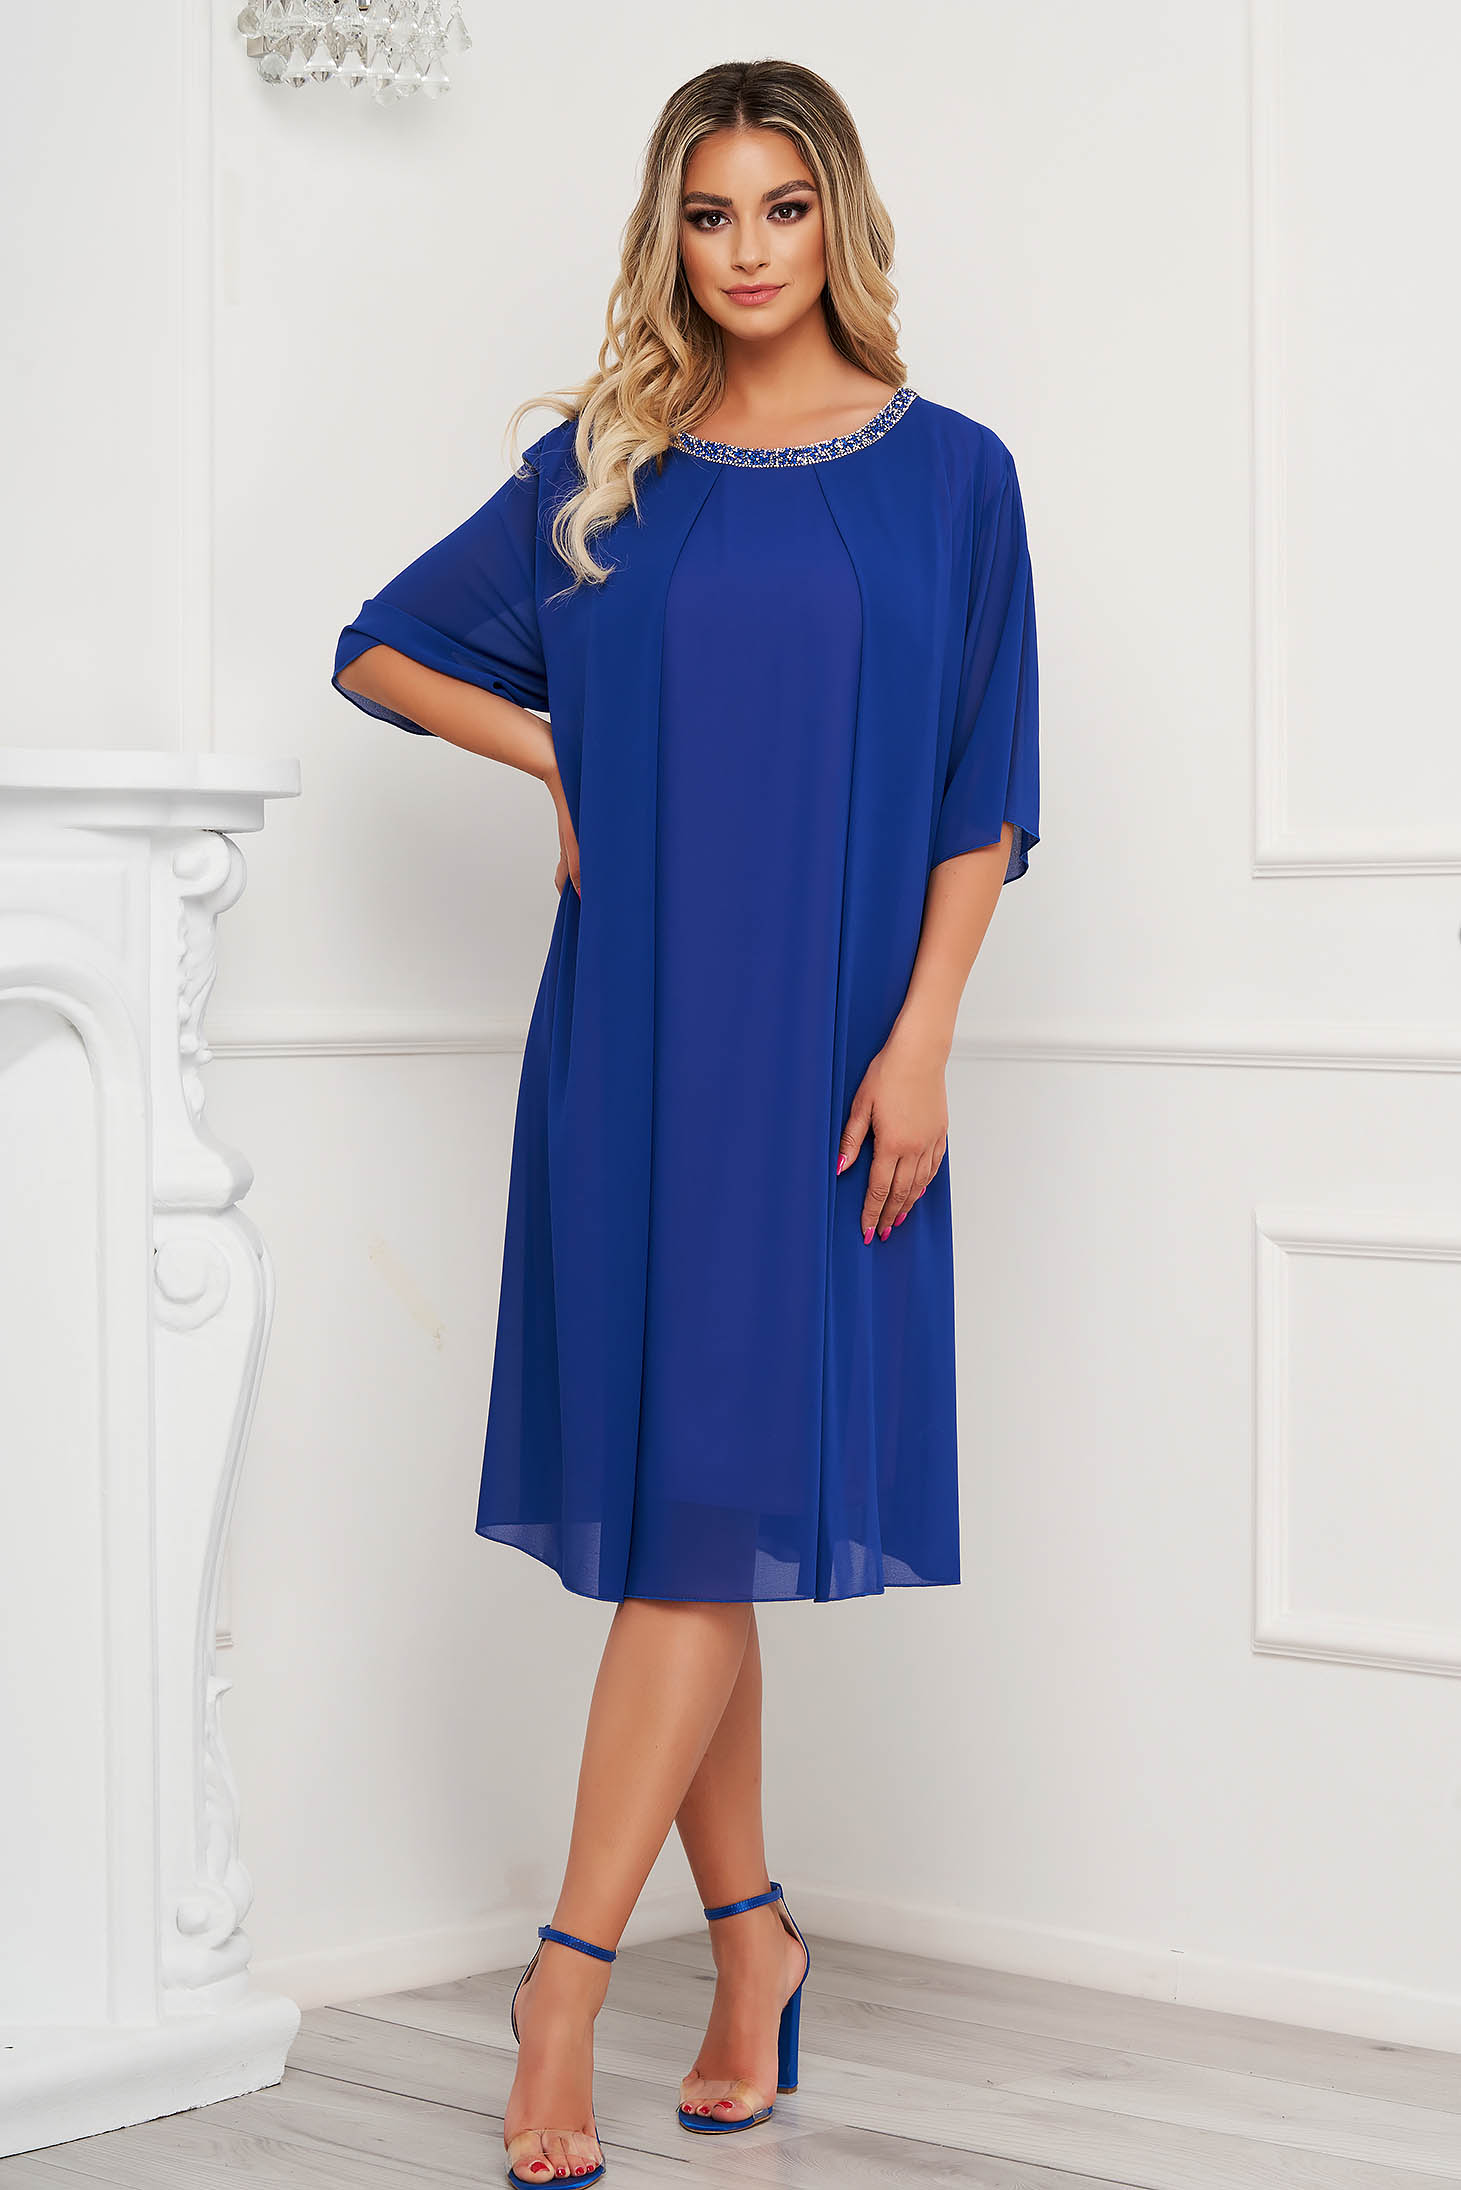 From veil fabric midi loose fit with crystal embellished details blue dress occasional